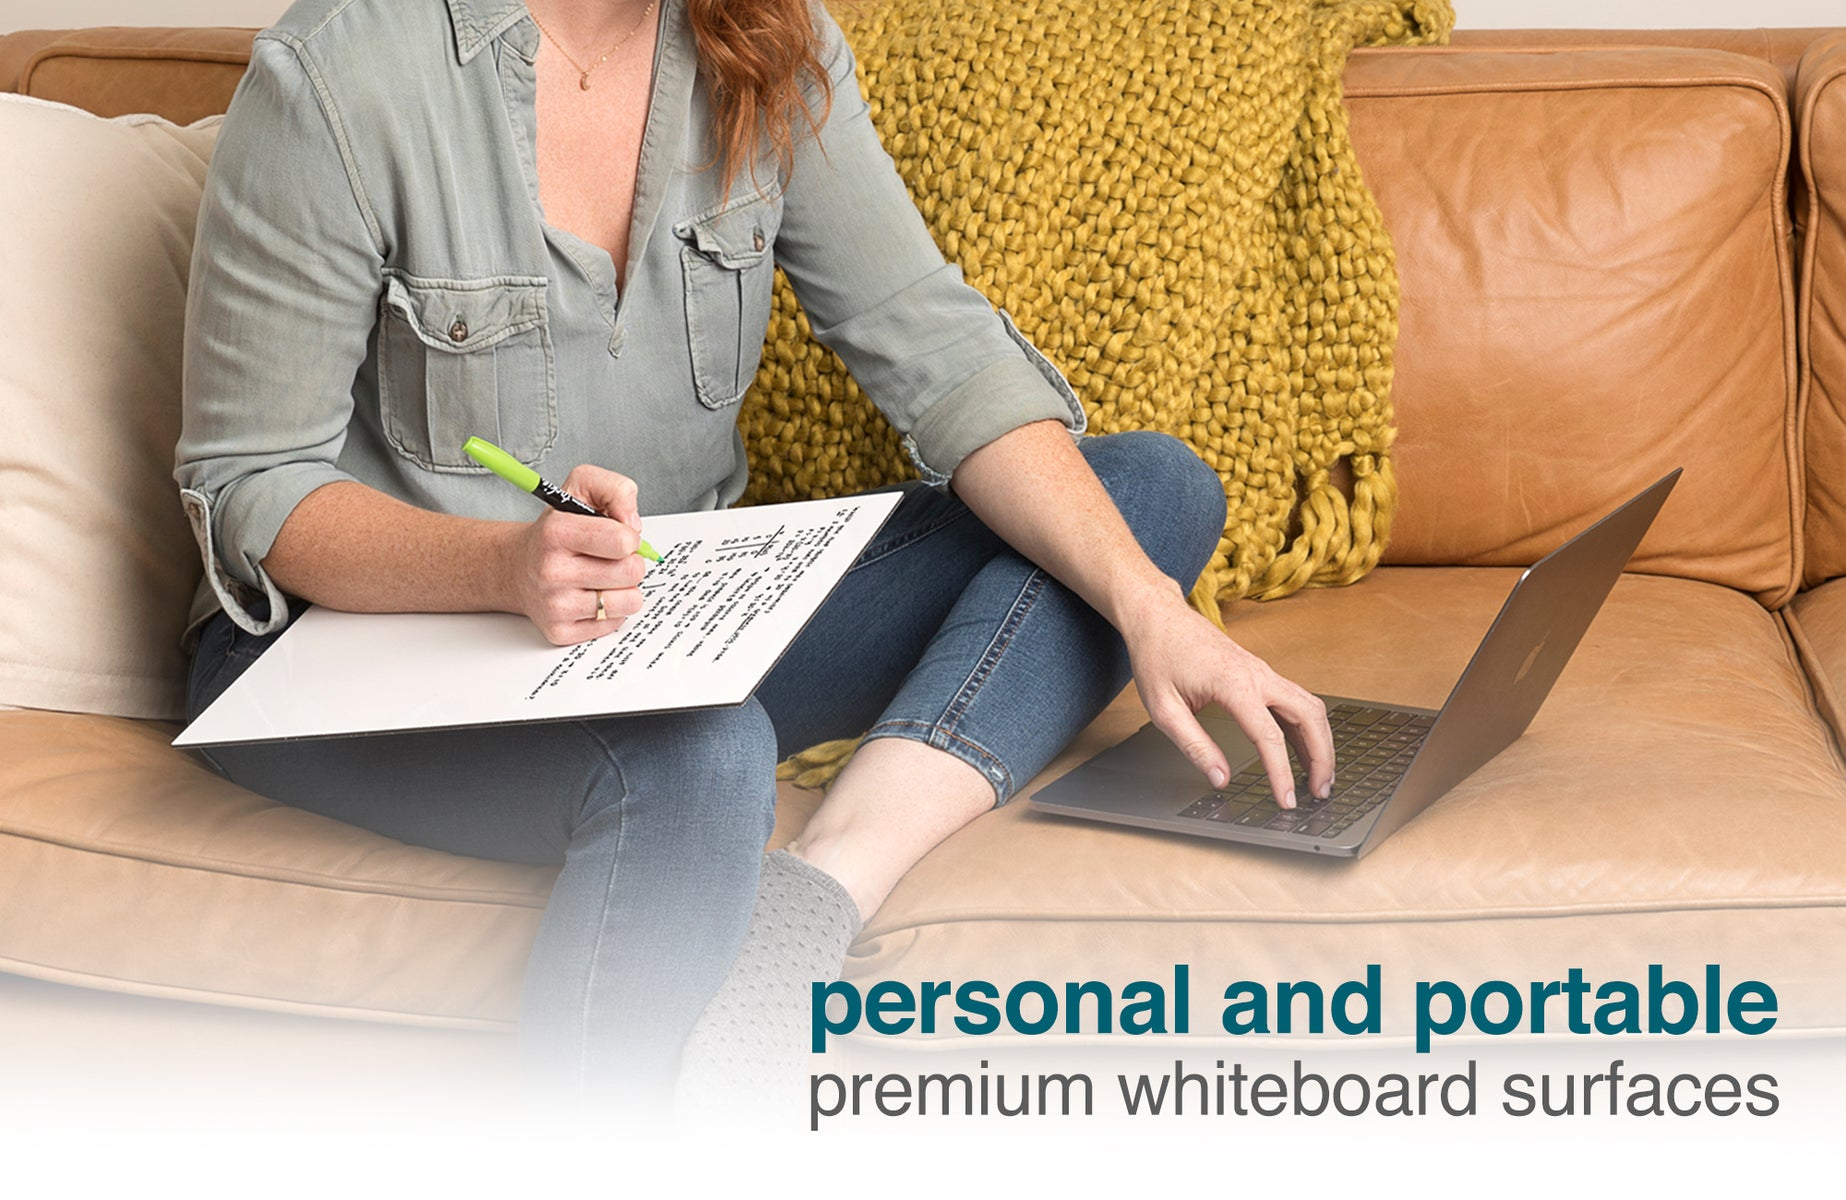 Personal Whiteboard Surfaces <br/> Personal Whiteboards For Everything You Need to Jot Down